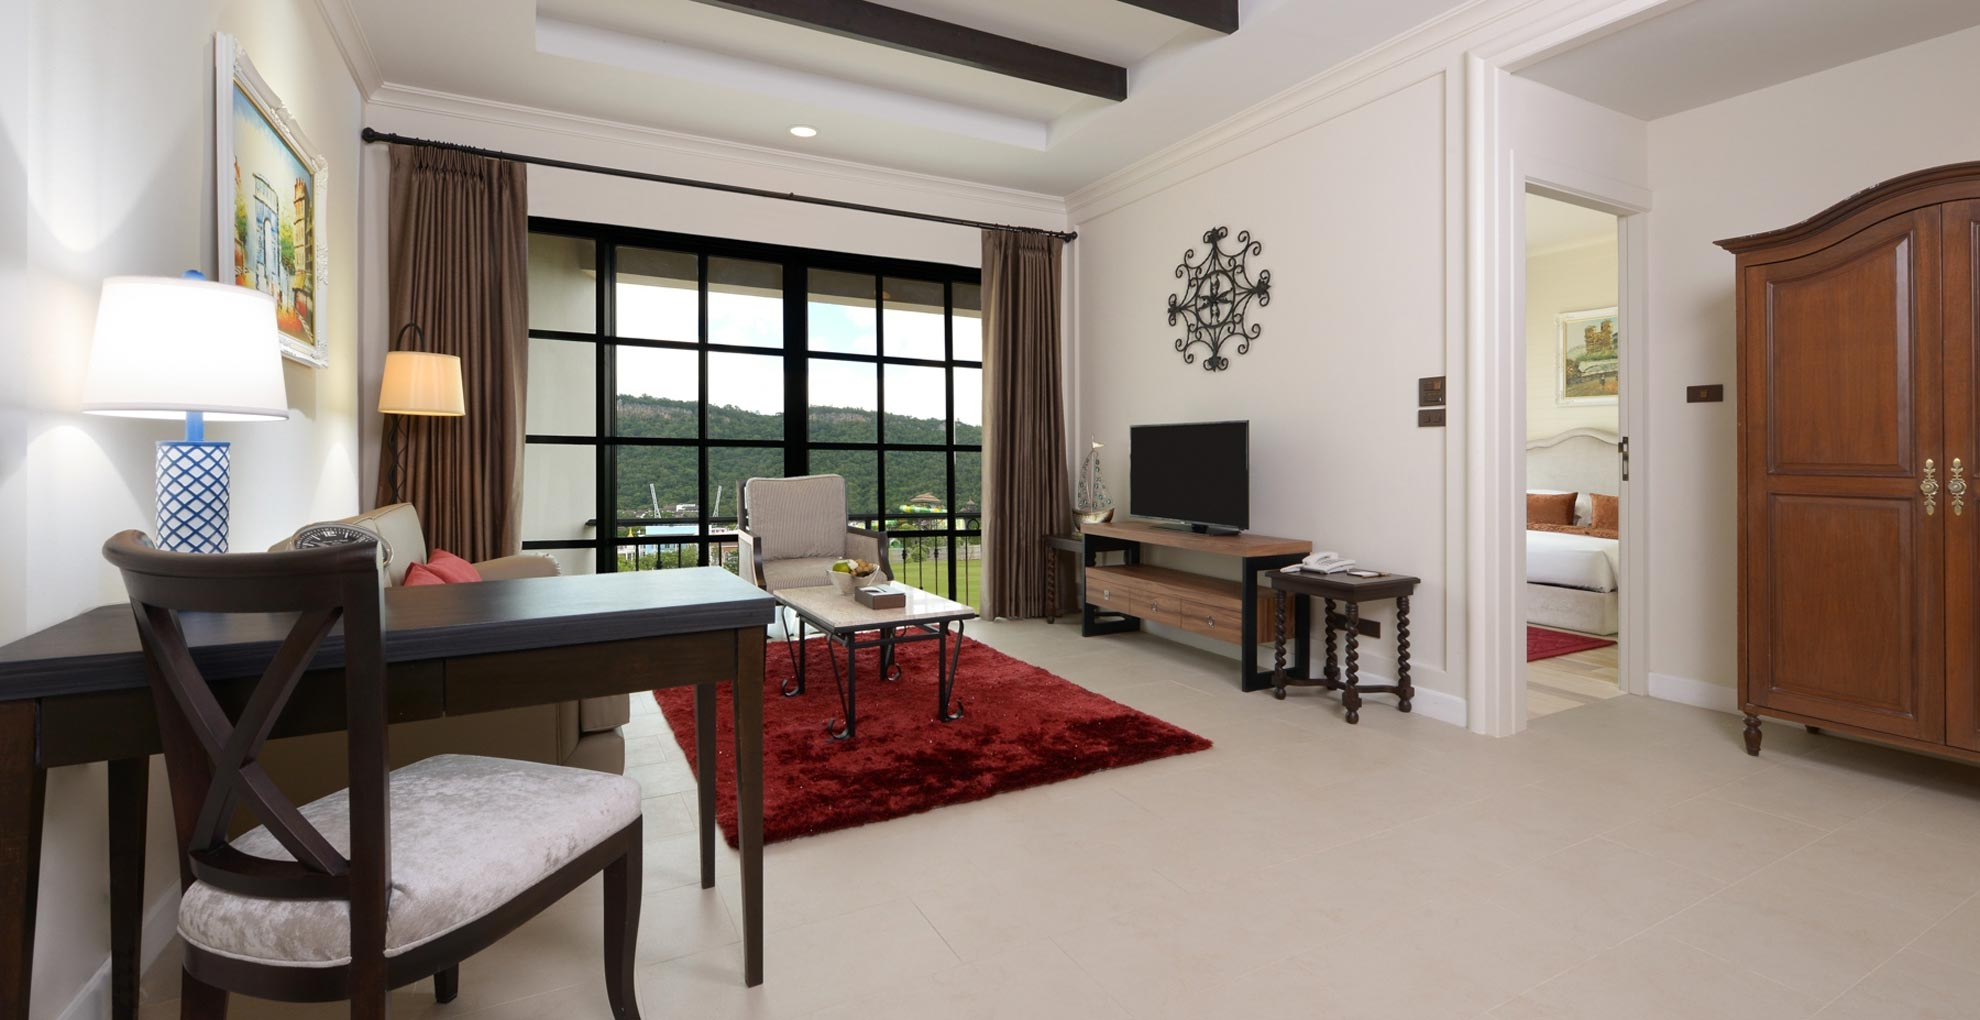 Le Monte Hotel Khao Yai   Best Hotels in Asia   MUSE Hotel Awards